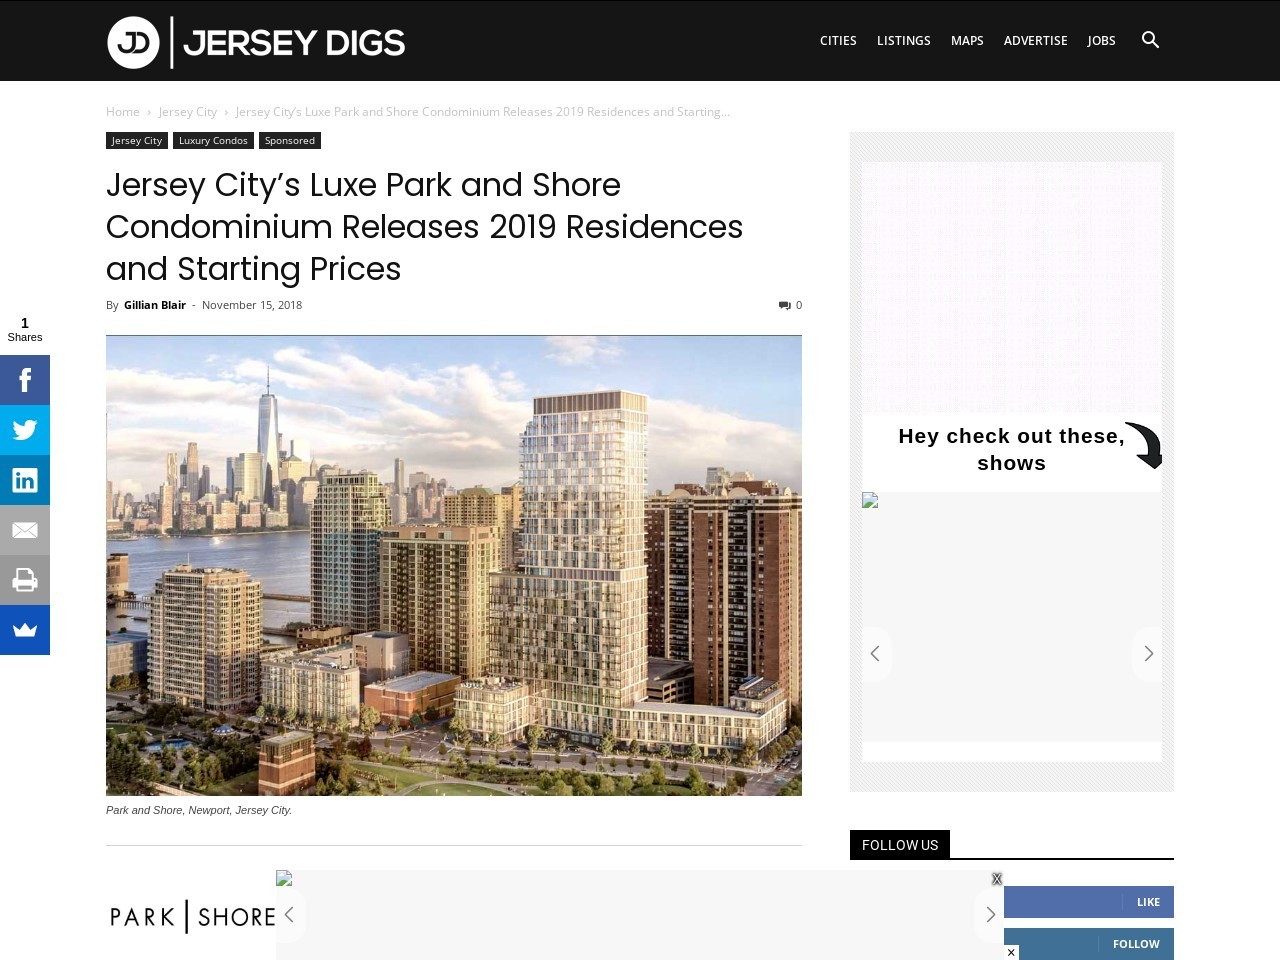 Jersey City's Luxe Park and Shore Condominium Releases 2019 Residences and Starting Prices